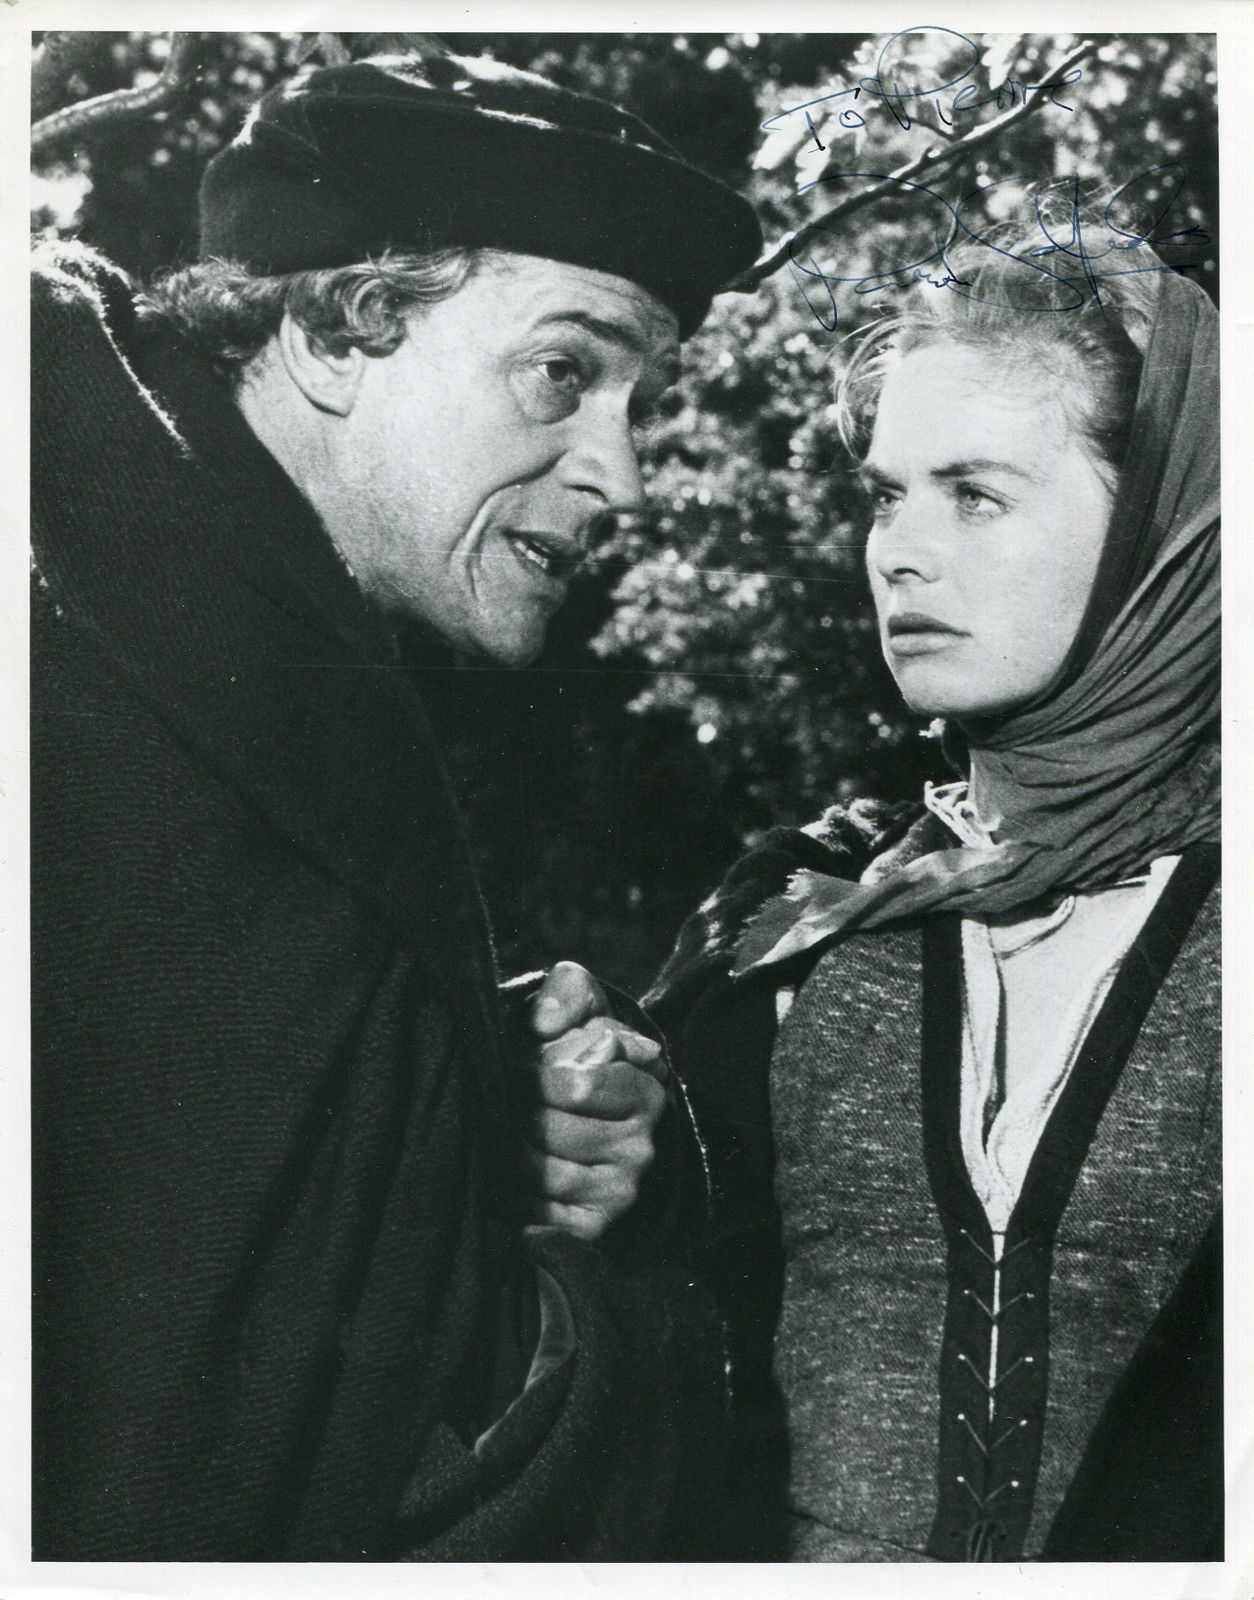 Paul Scofield Pictures